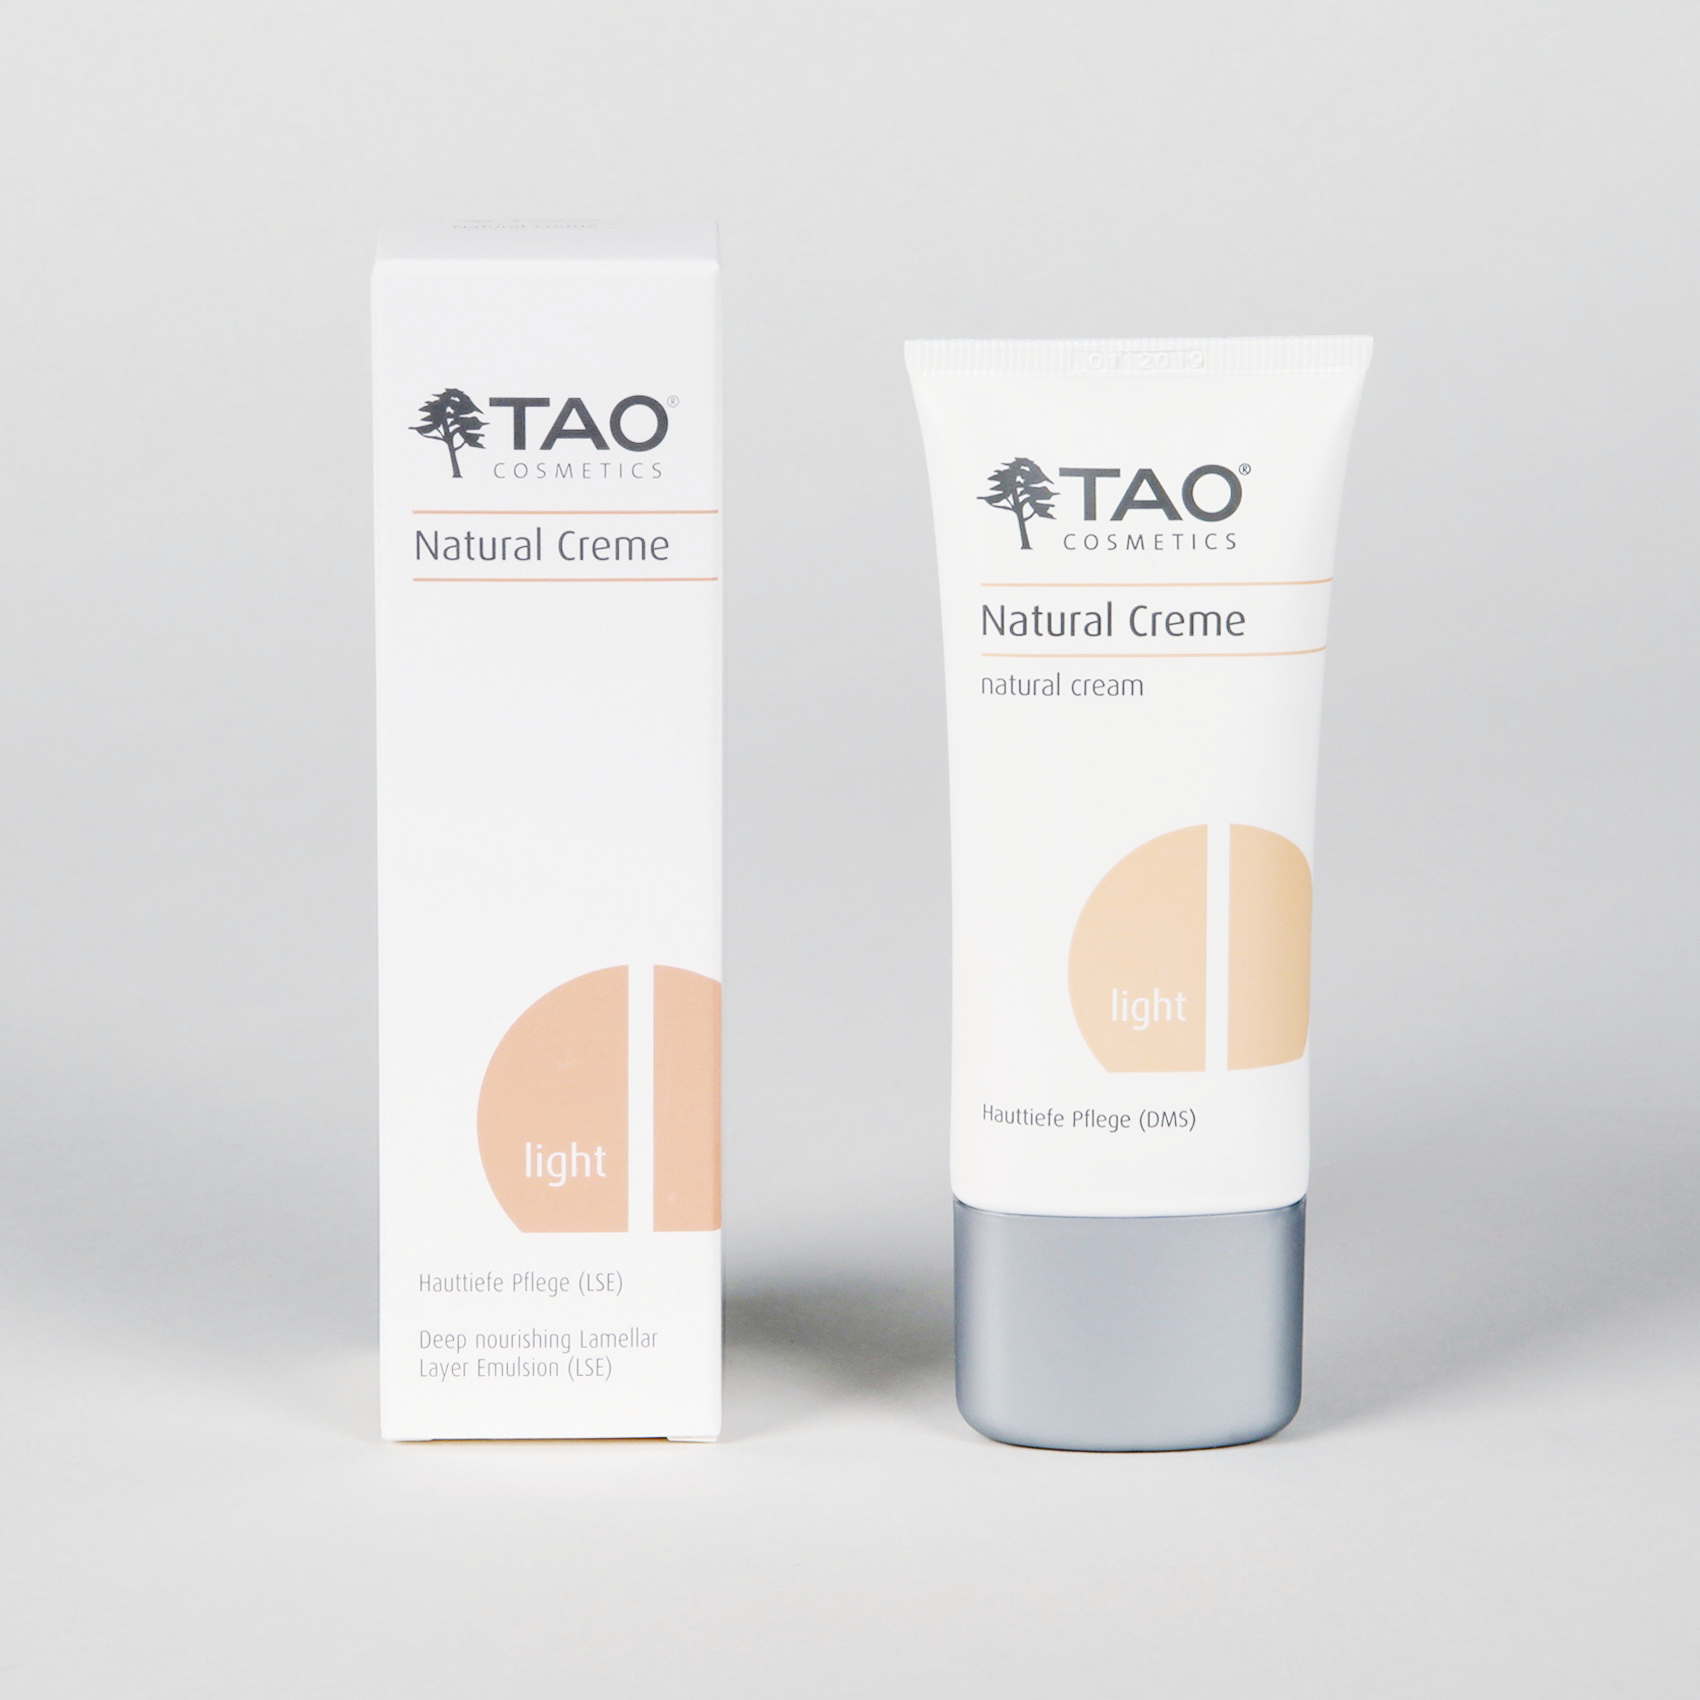 Verpackung Nautral Creme hell Tao Cosmetics